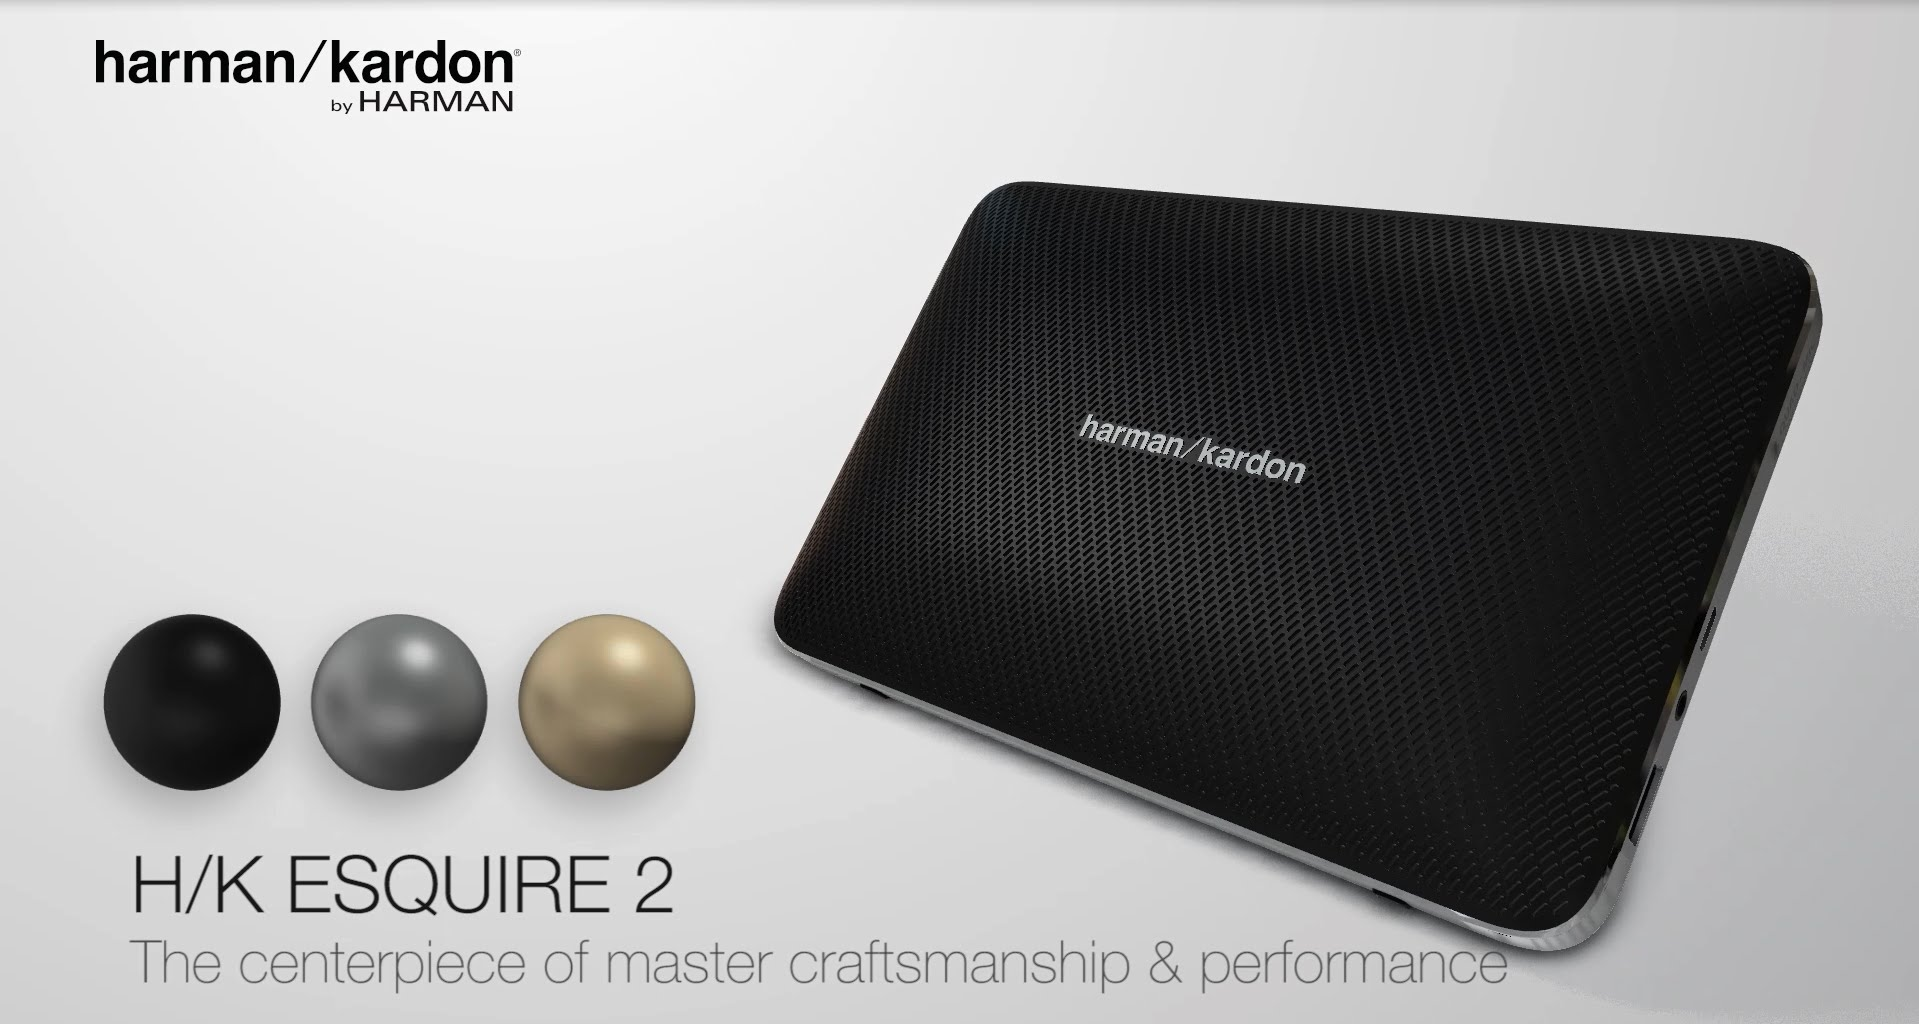 harman, kardon, tintucaudio, esquire2